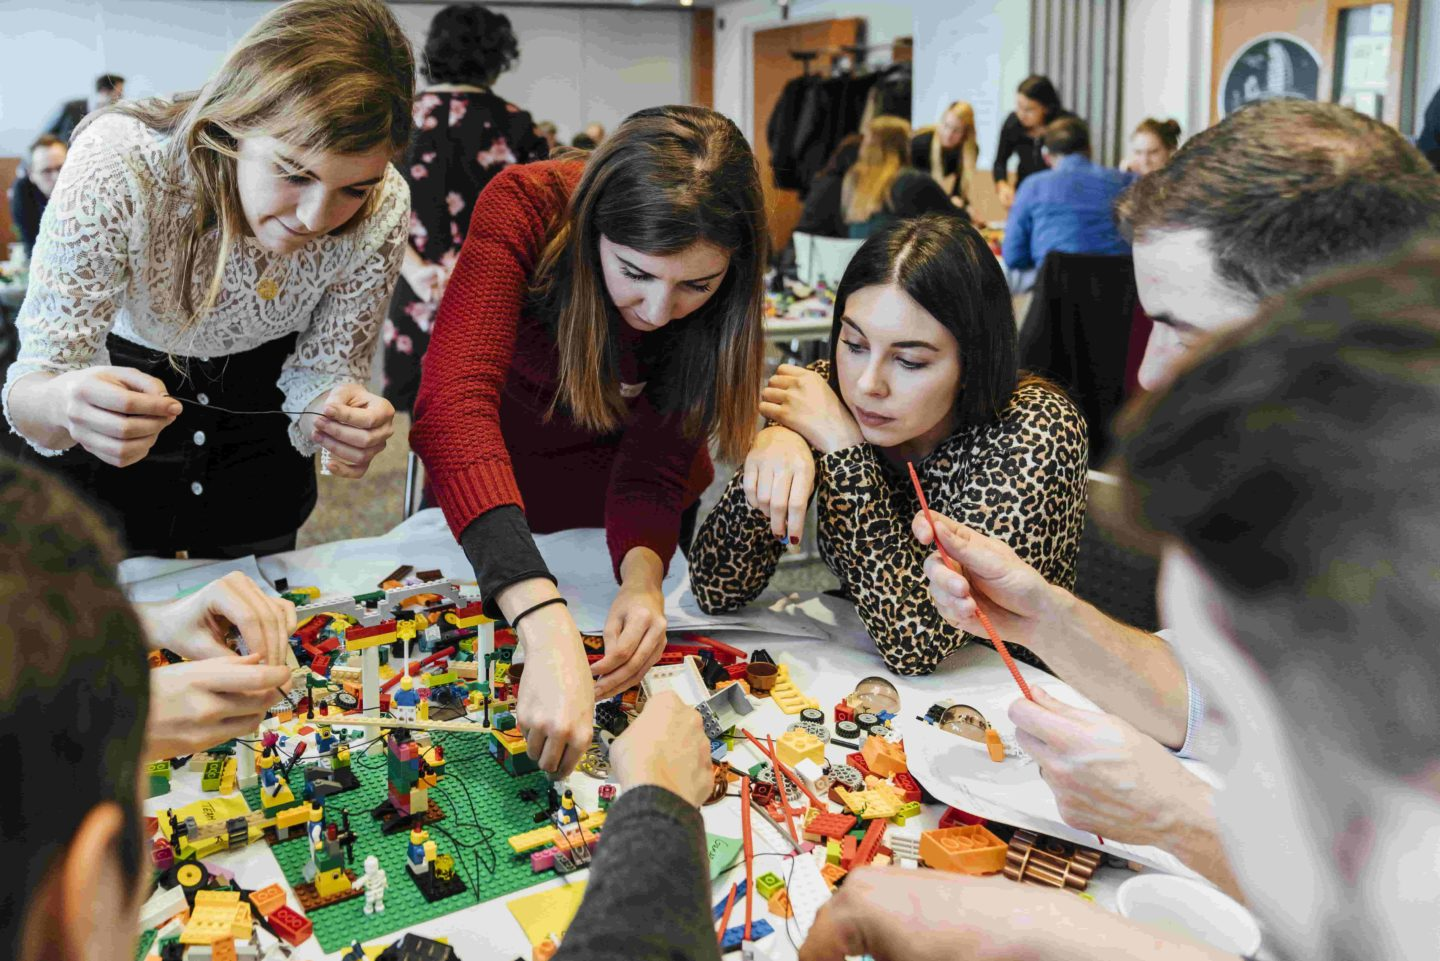 Ariad fun teambuilding culture with lego